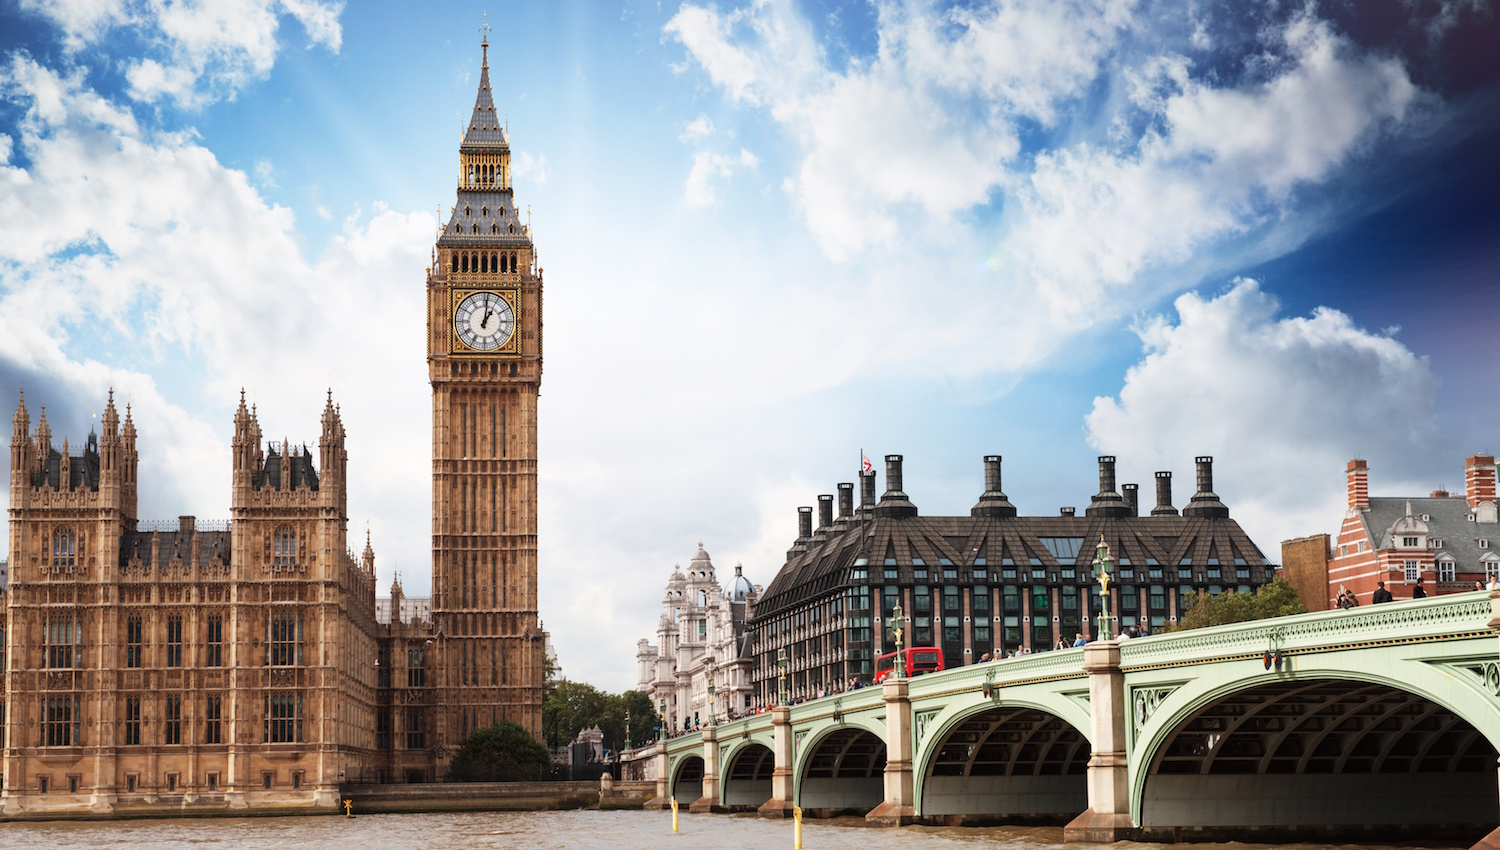 Today in history... 'Big Ben' heard for the first time